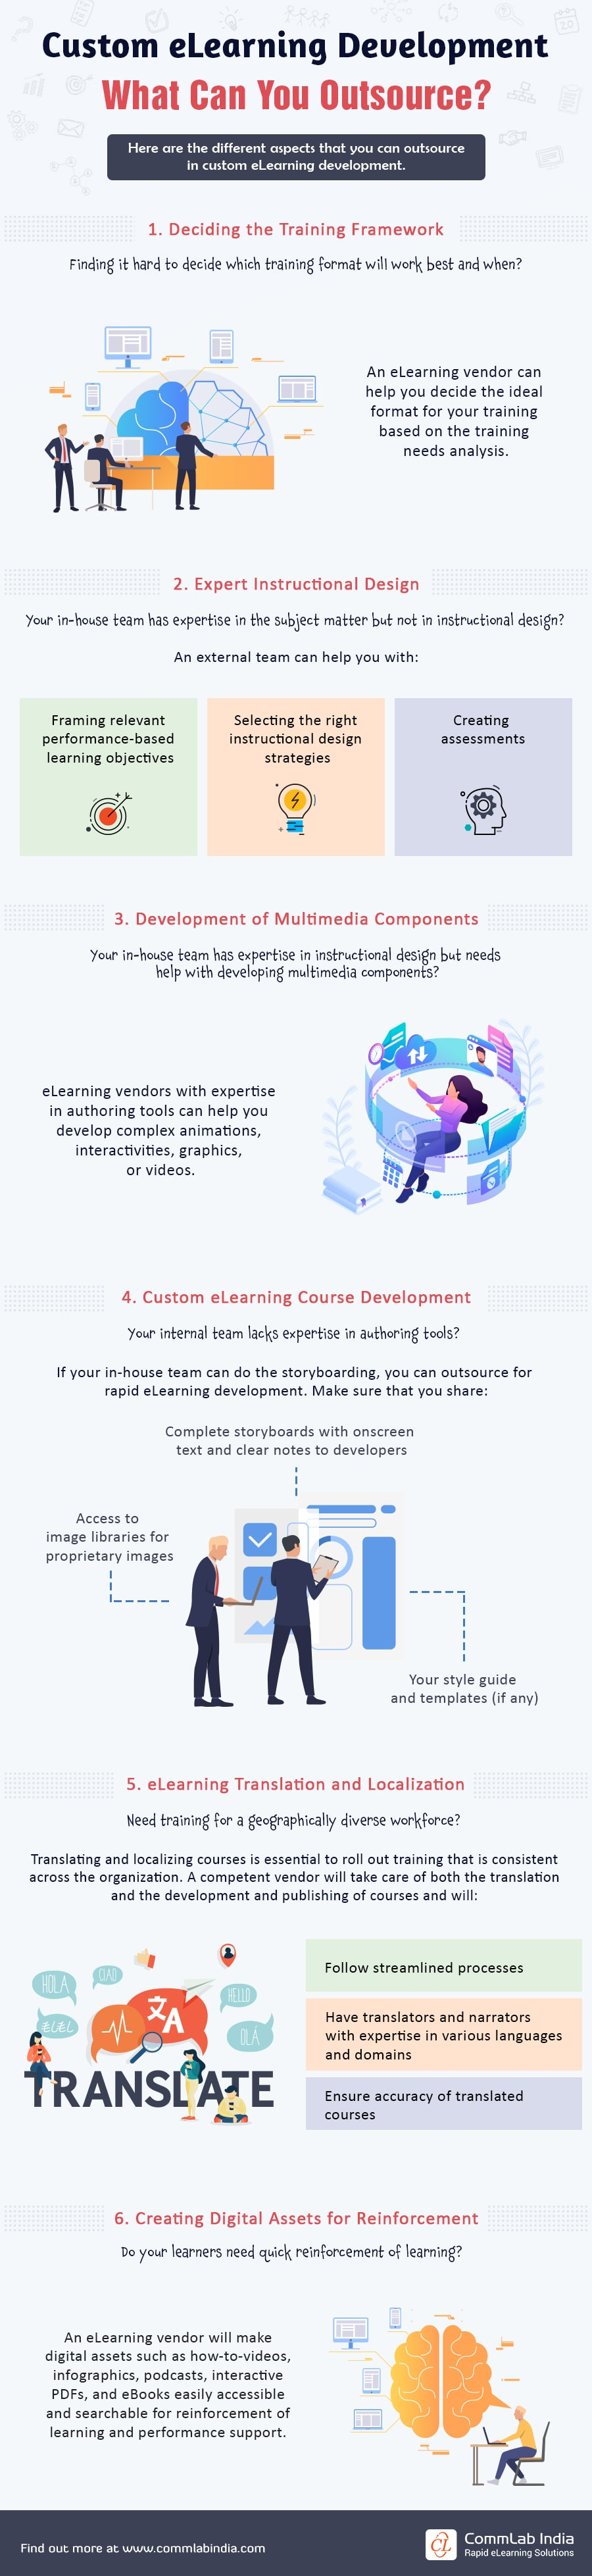 Custom eLearning Development: Components that can be Outsourced